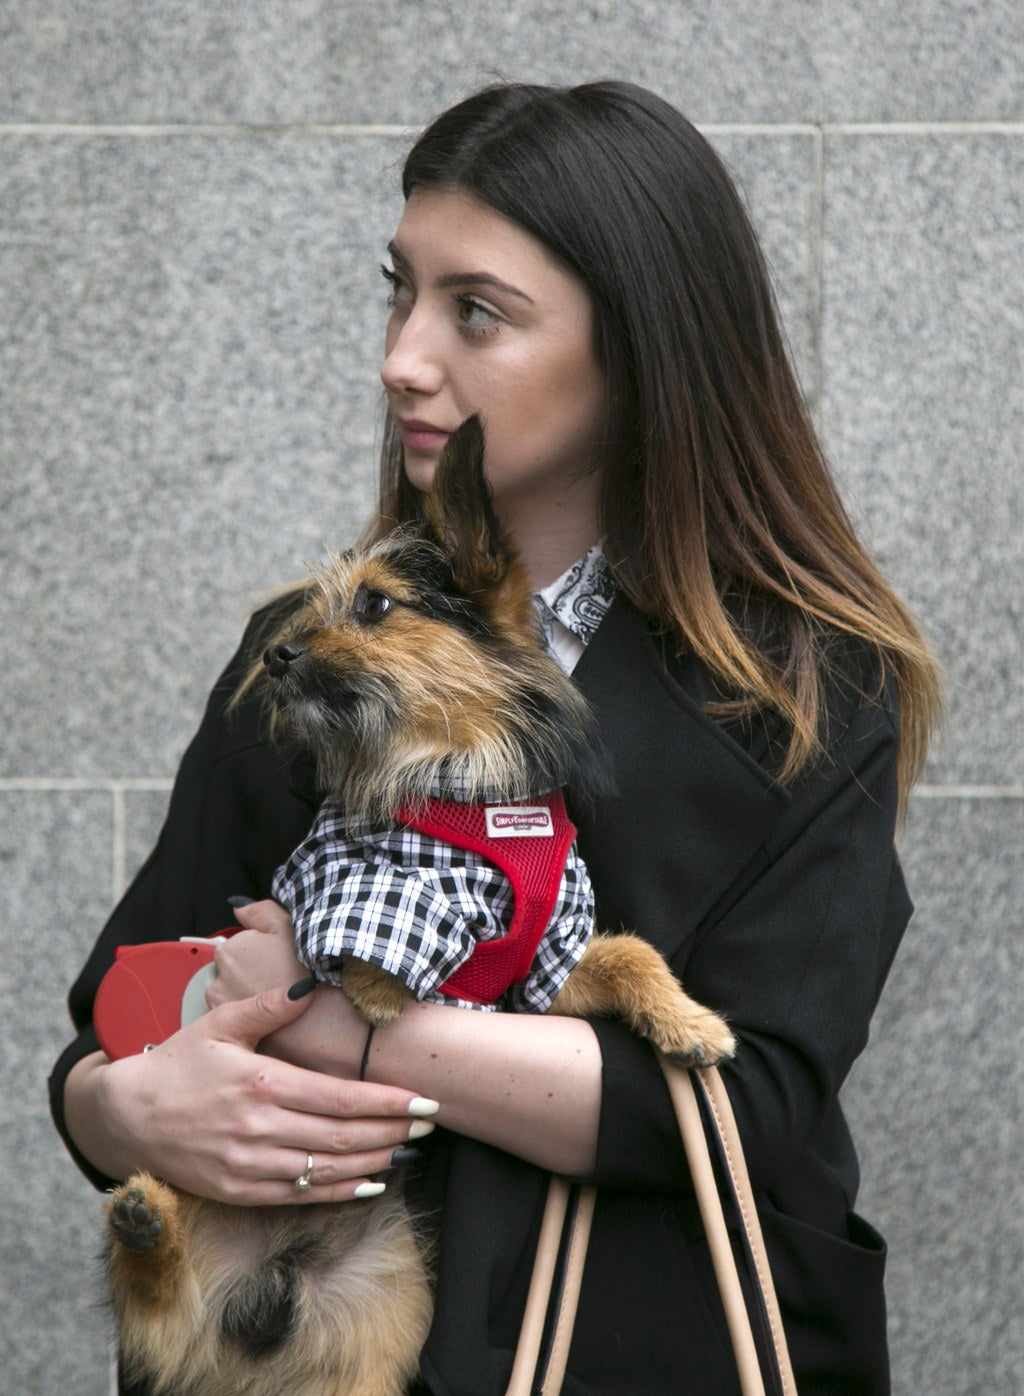 This Dog Presented A Petition To The Government To Ban Animal Abusers From Owning Pets